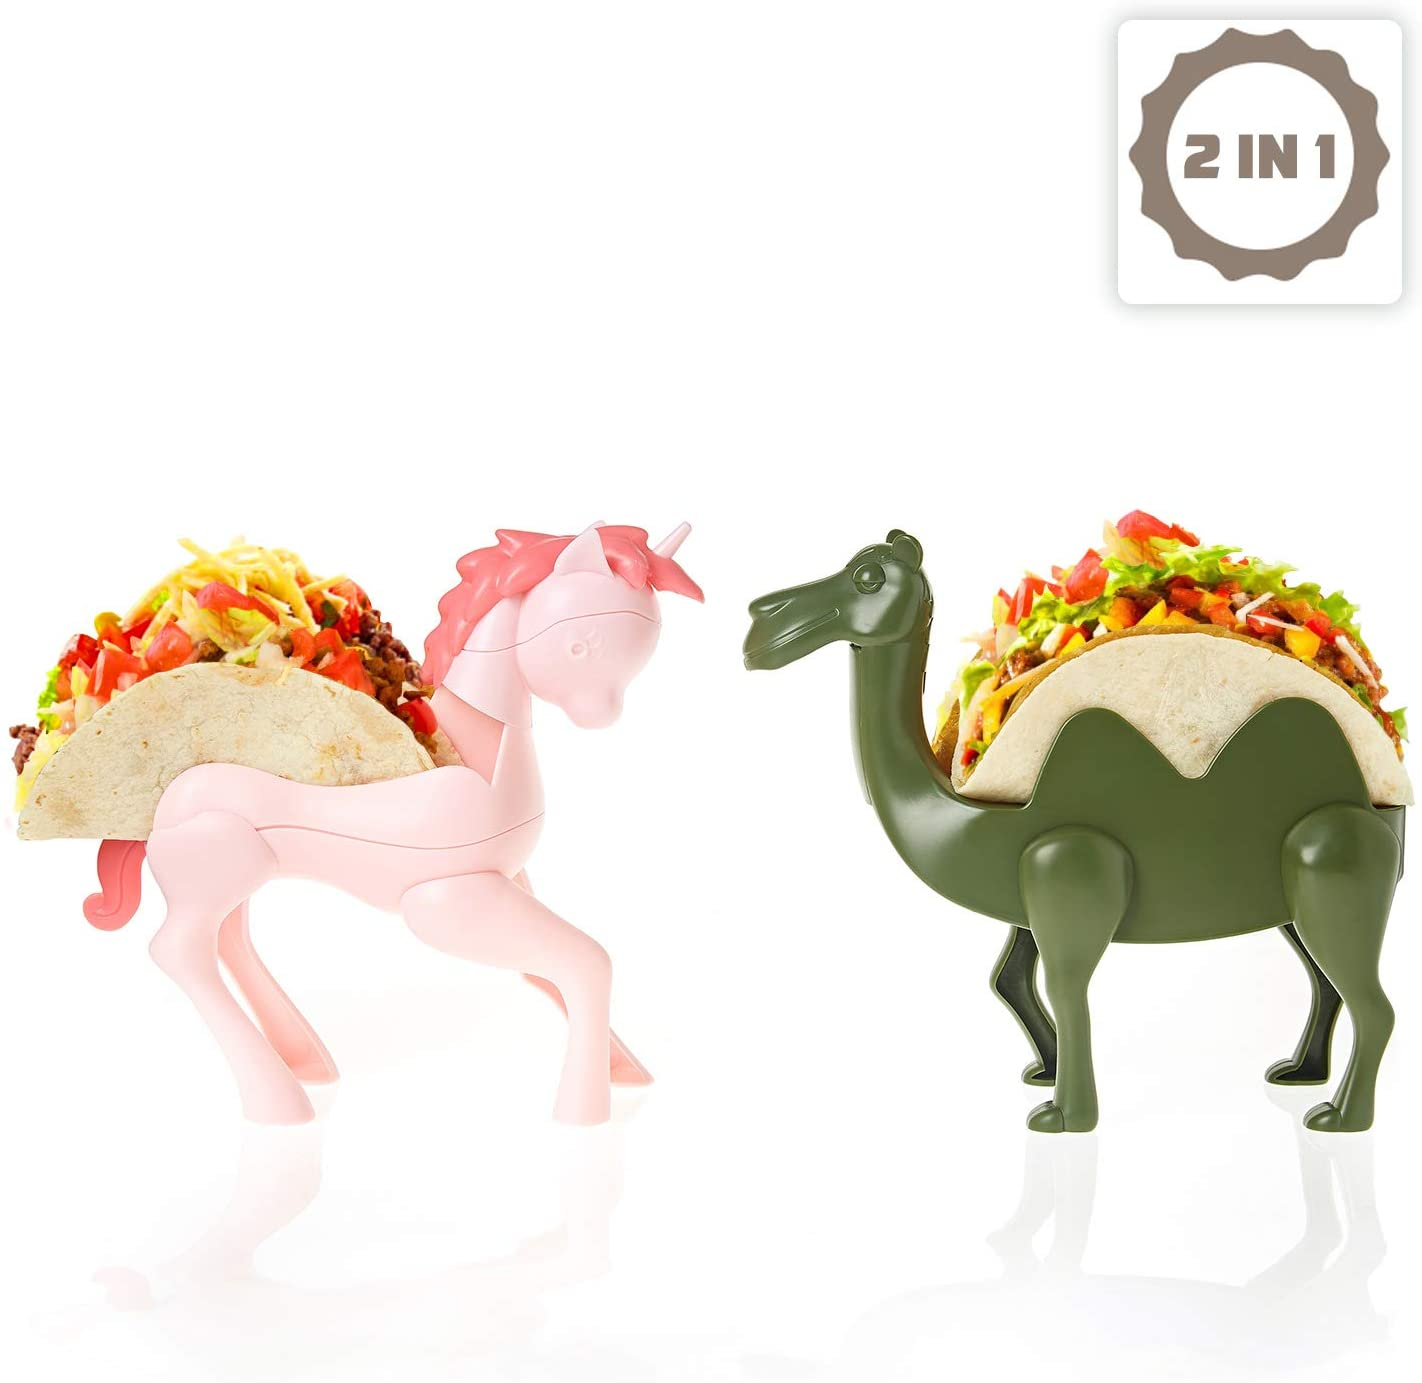 EASACE Animal Taco Holder for kids, Set of 2 Taco Stands, Holds Up to 2 Tacos Each Rack, Funny kid's Taco Plates, Dishwasher Safe, Perfect Gift for boys and girls (Unicorn & Camel)